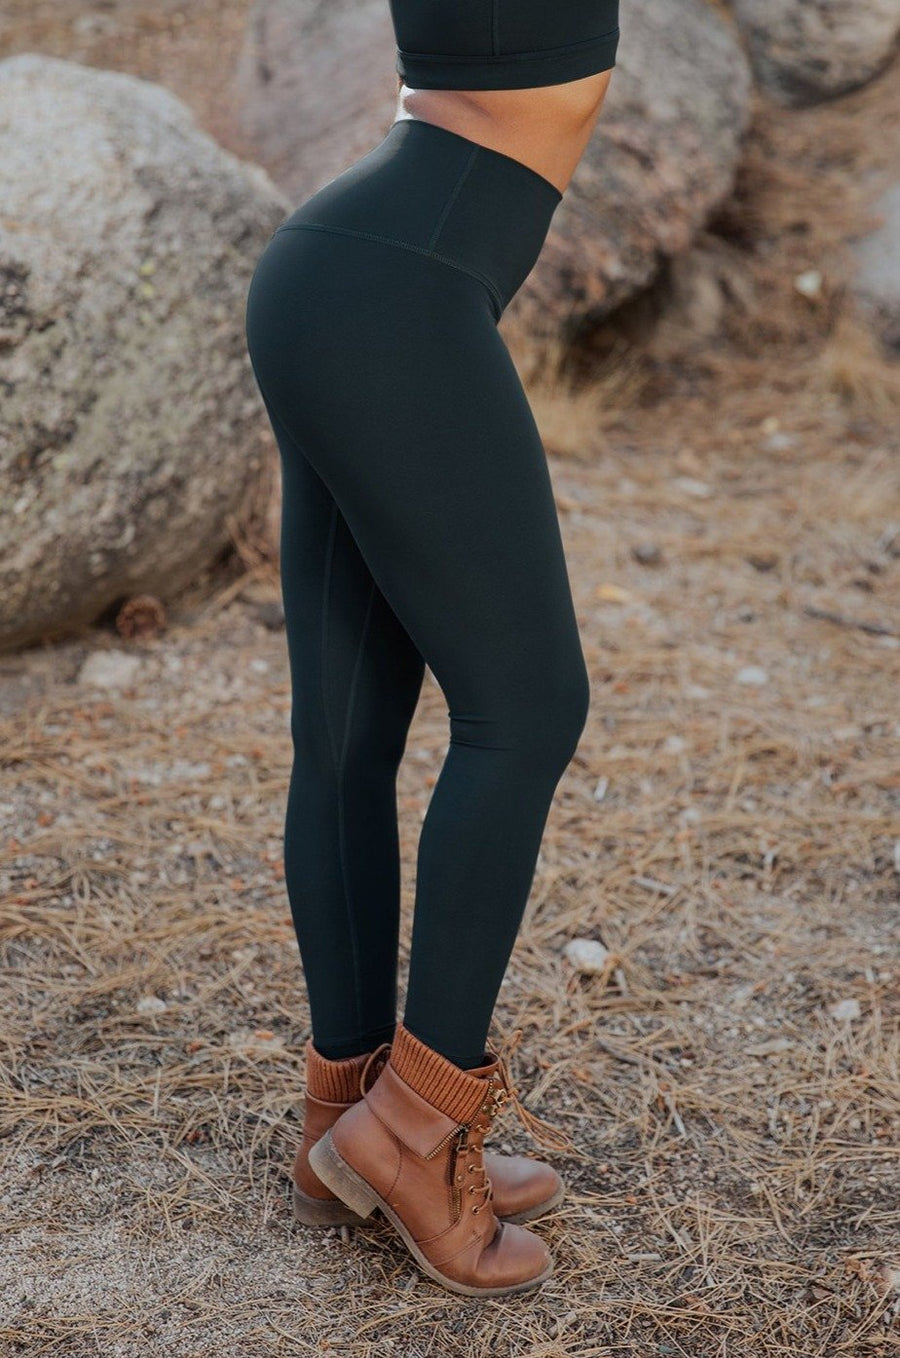 Alpine Legging (anti-camel toe) - Evergreen